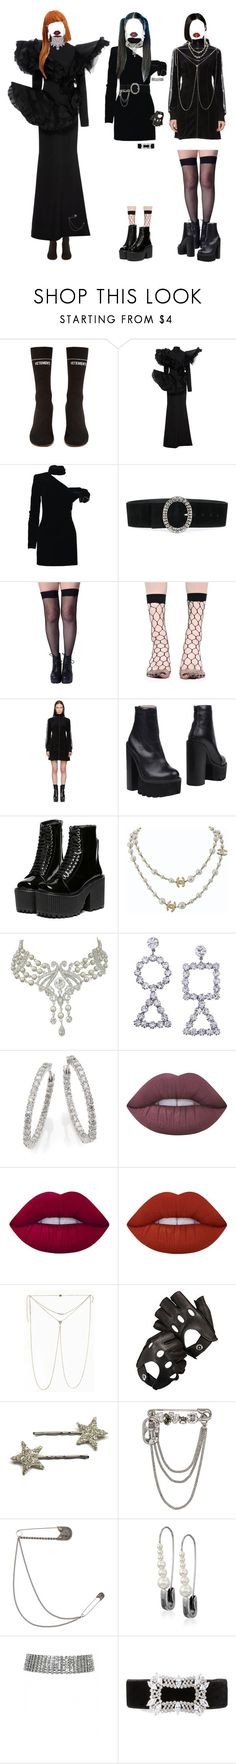 """-bad boy"" by salt-sugar ❤ liked on Polyvore featuring Vetements, Christian Siriano, Yves Saint Laurent, Alberta Ferretti, Opening Ceremony, Jeffrey Campbell, Chanel, Roberto Coin, Lime Crime and Aspinal of London"